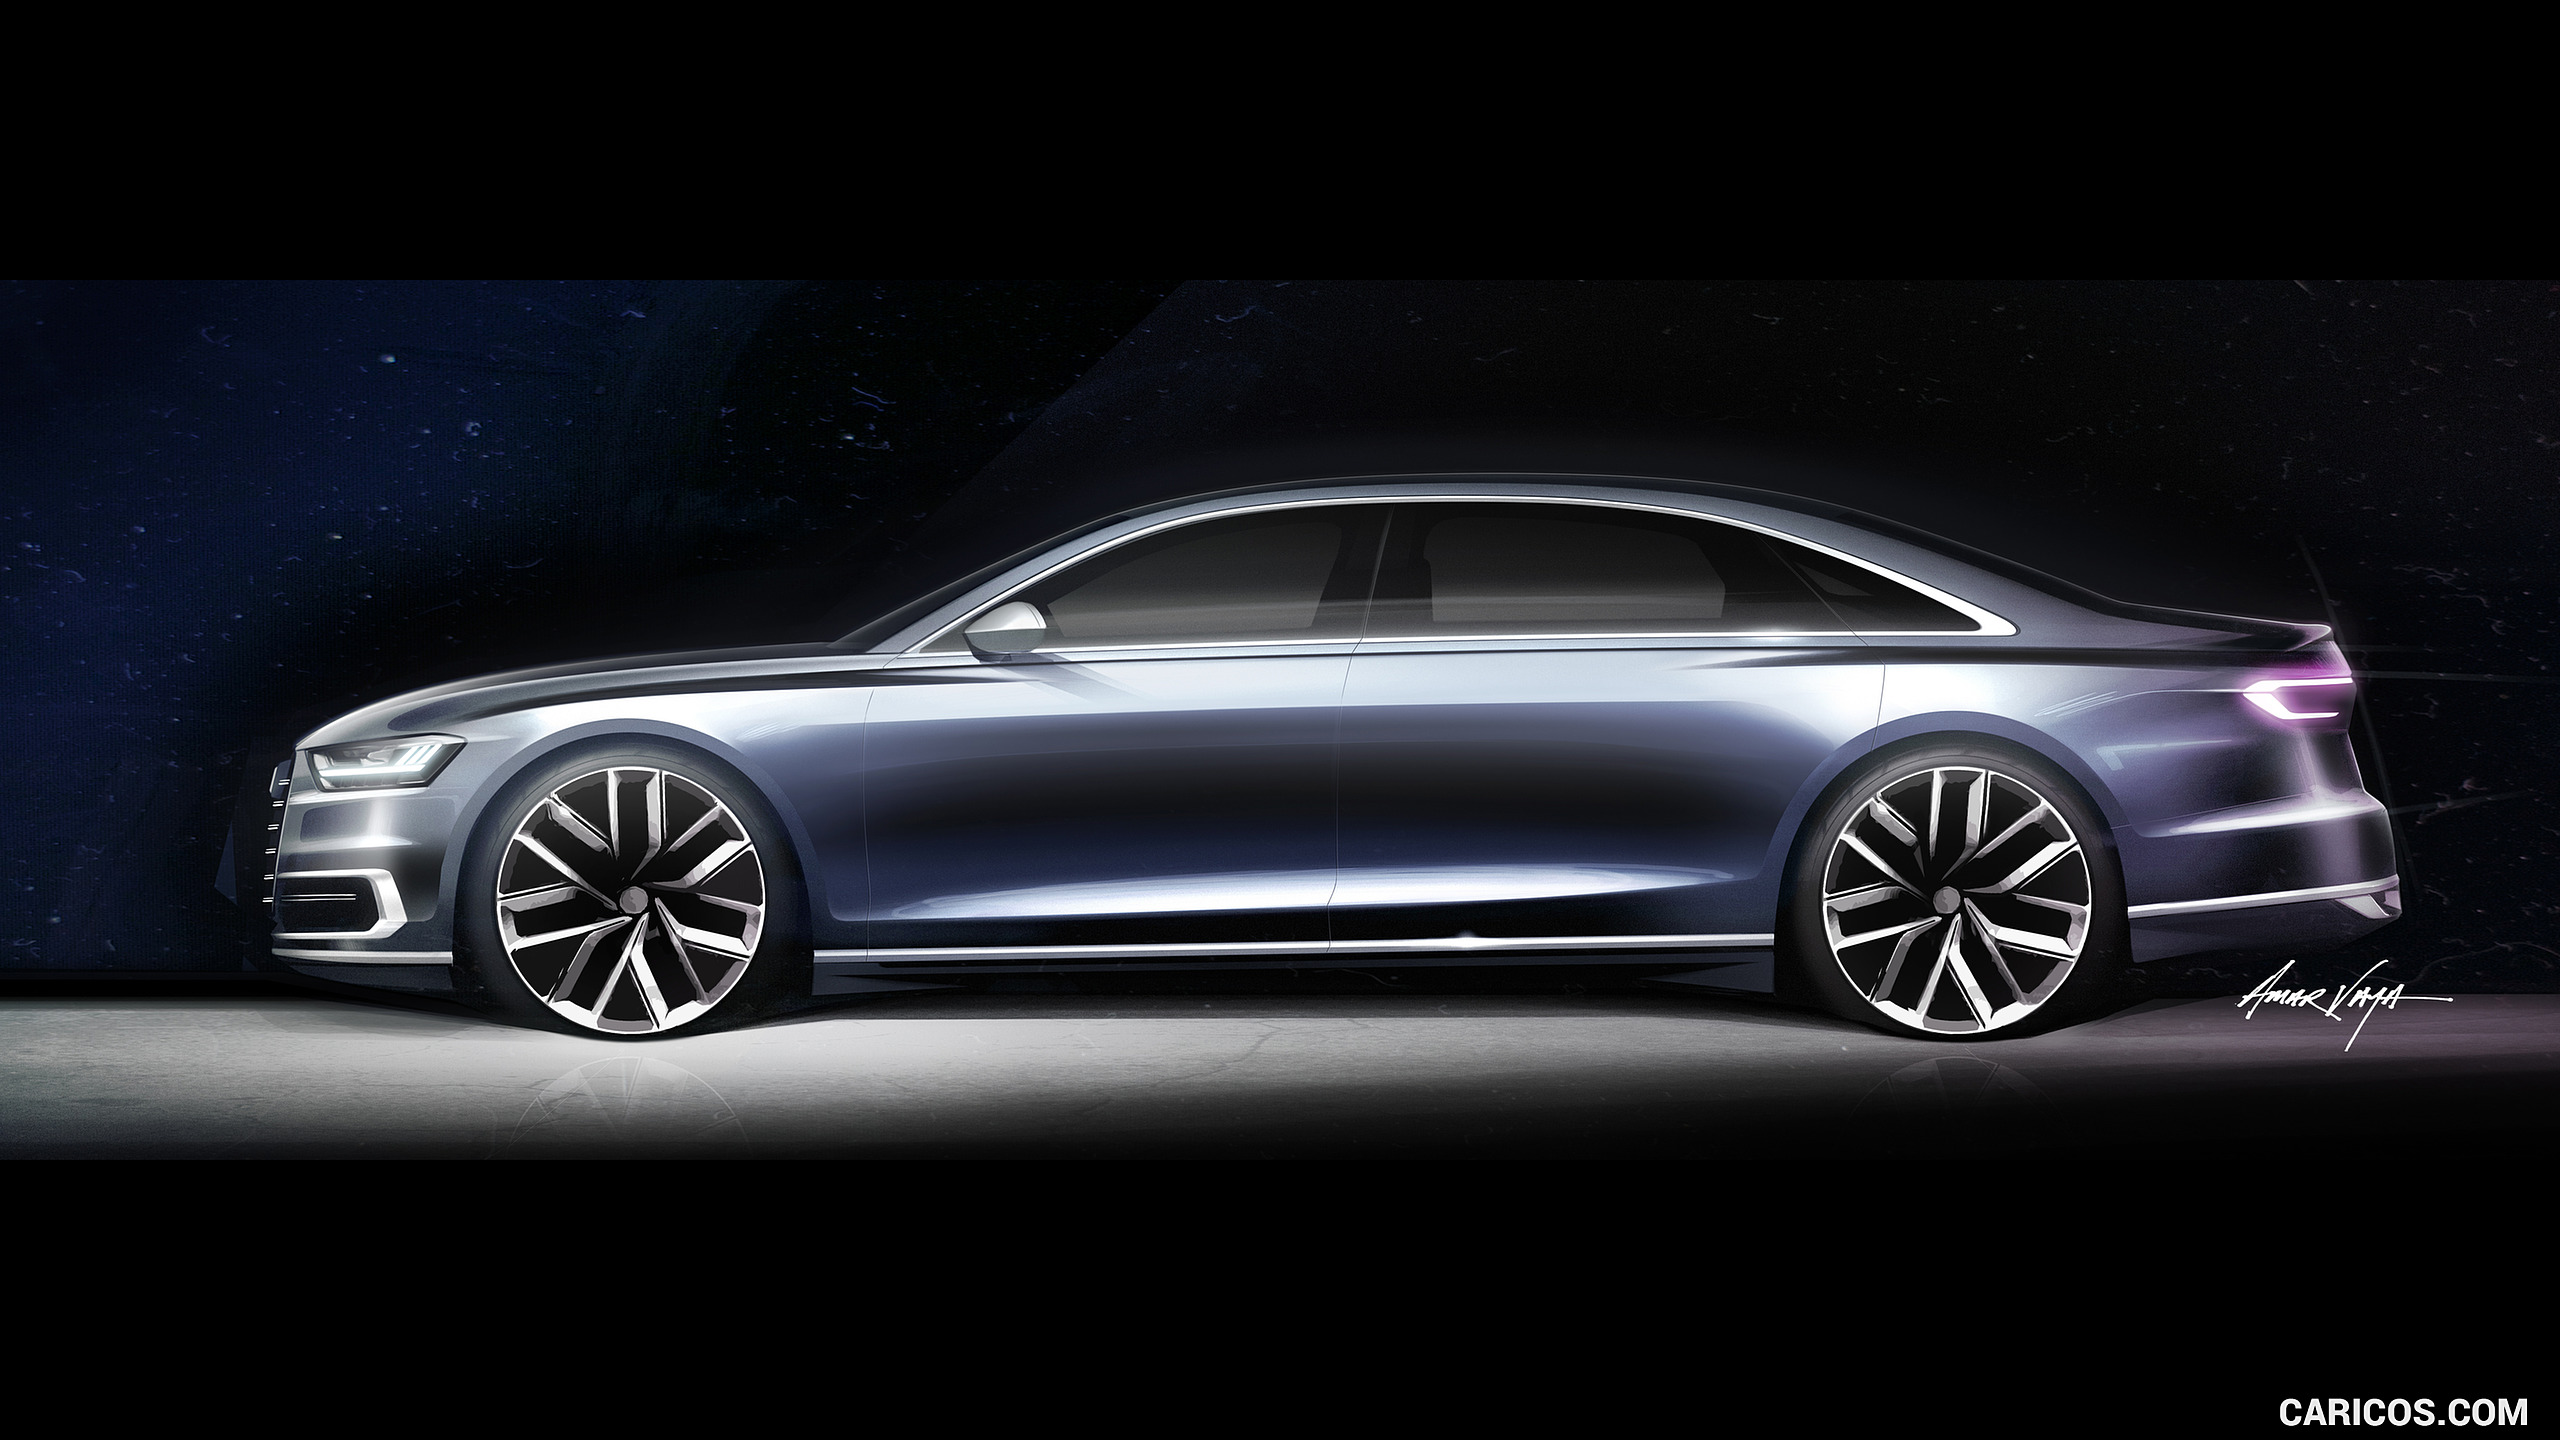 2018 Audi A8   Design Sketch HD Wallpaper 38 2560x1440